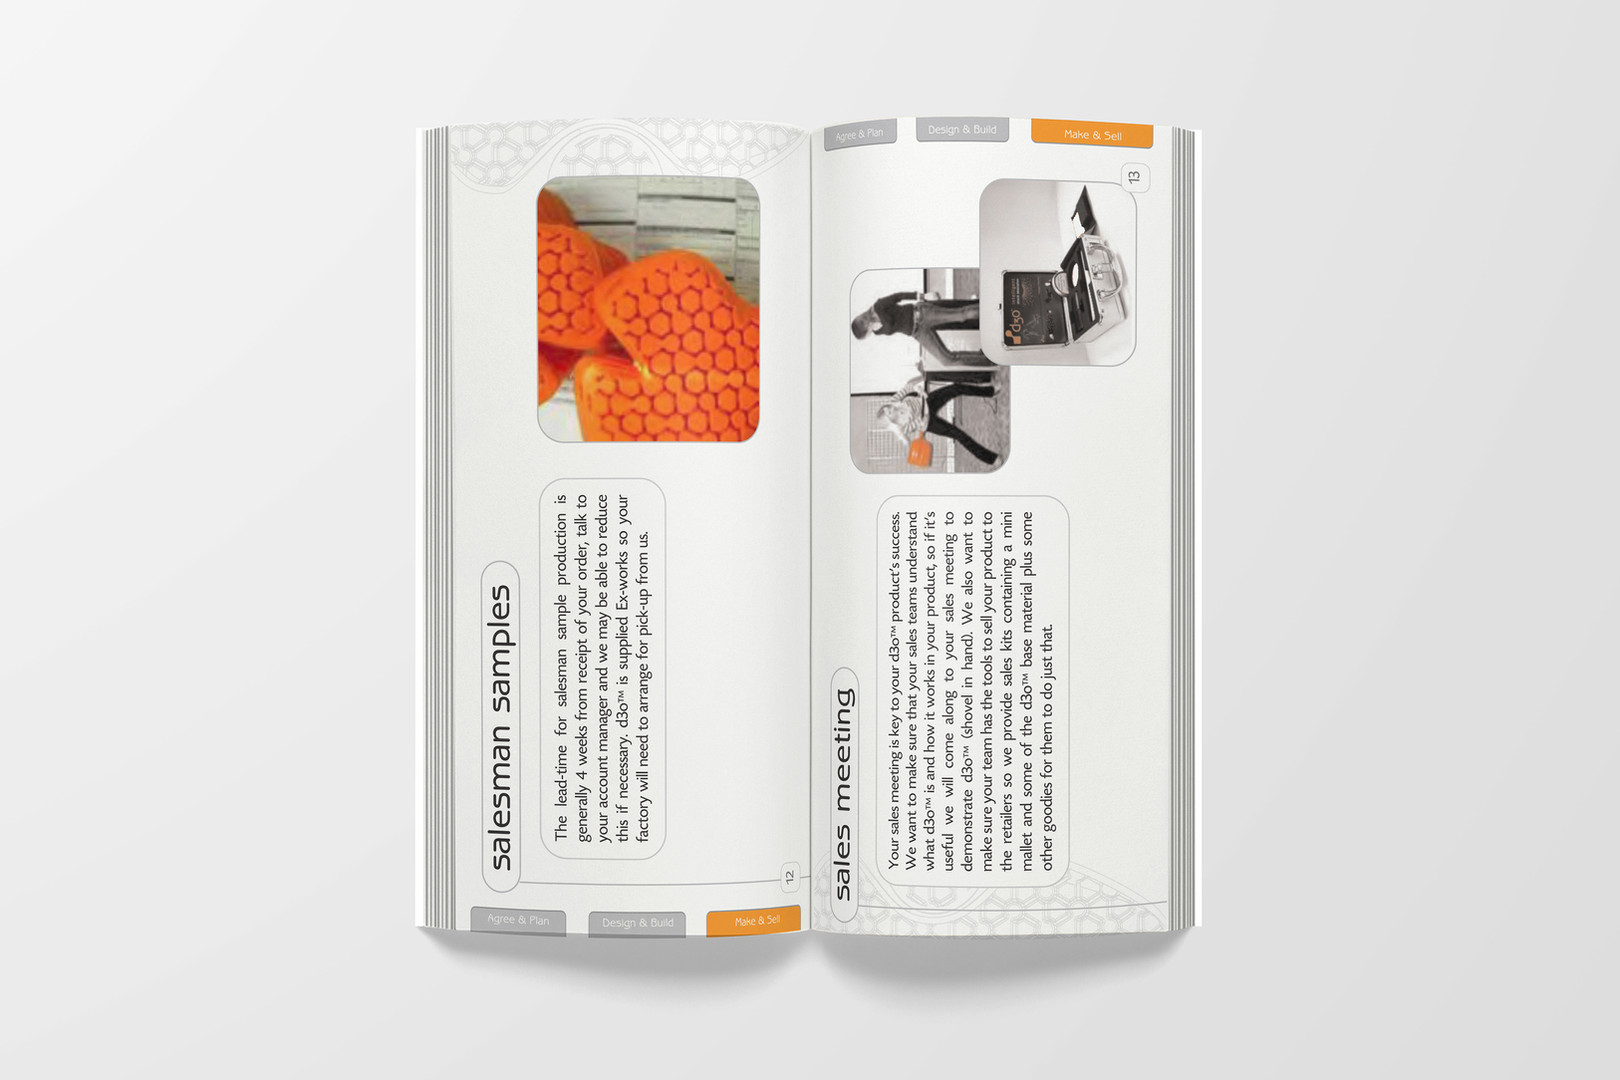 d3o how we work book